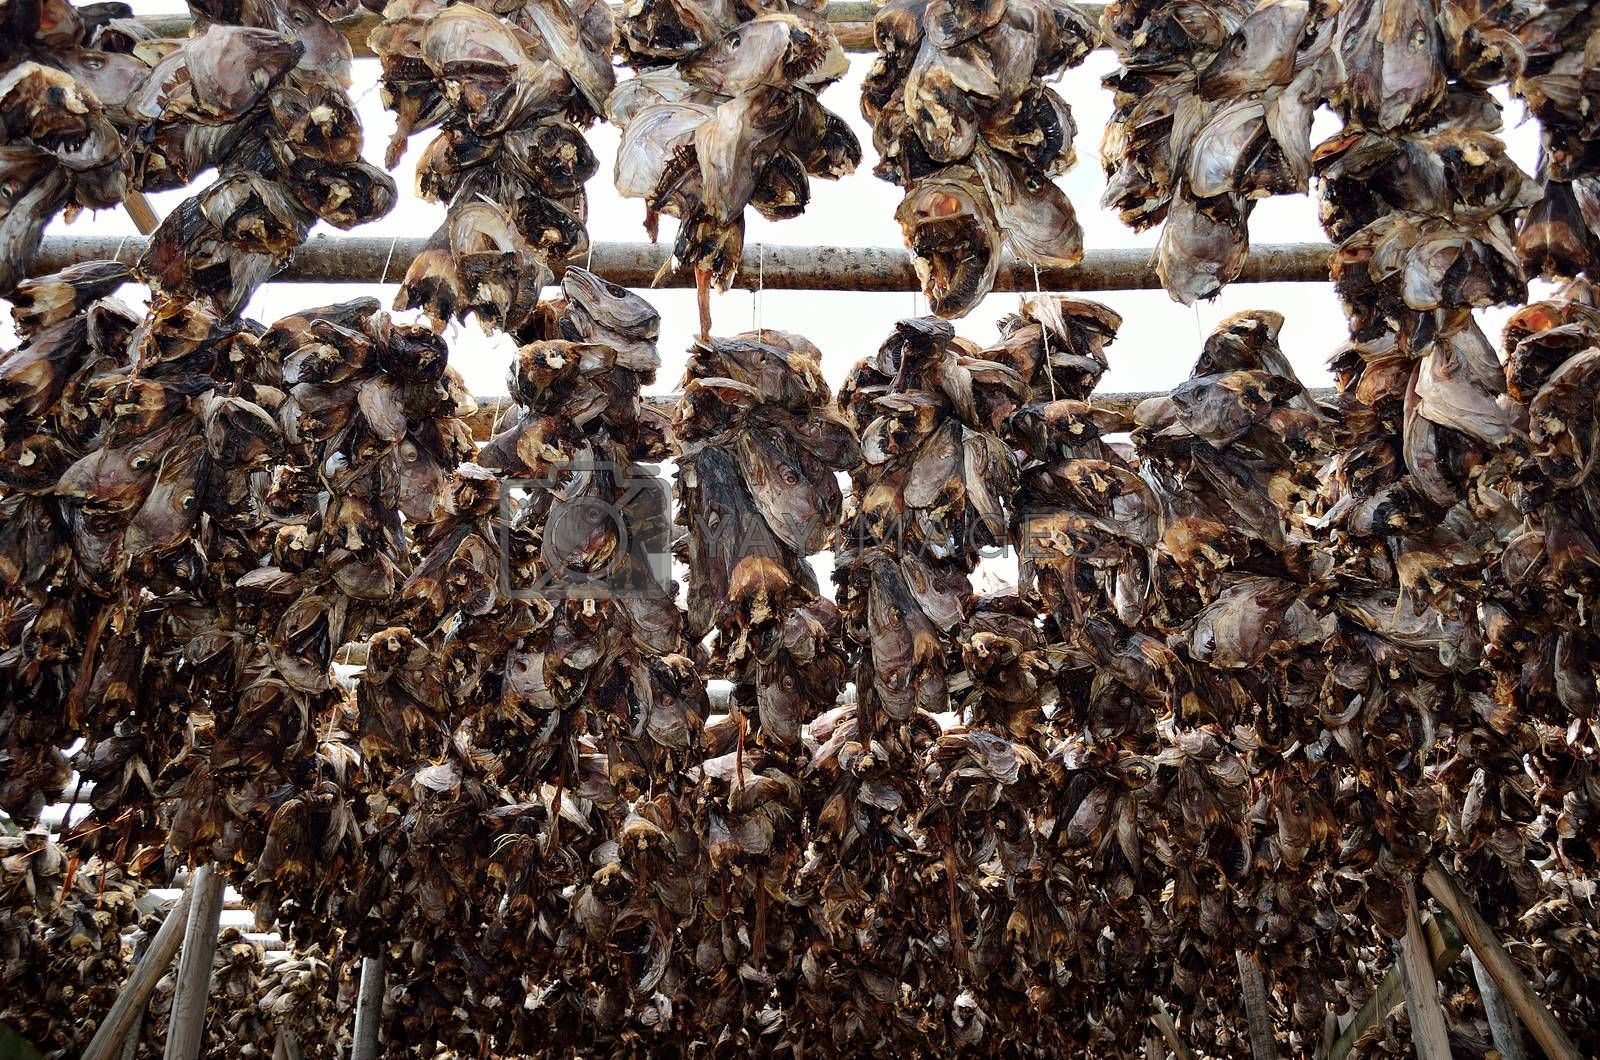 stockfish structure full of cod and other fish hanging to dry in northern norway in summer